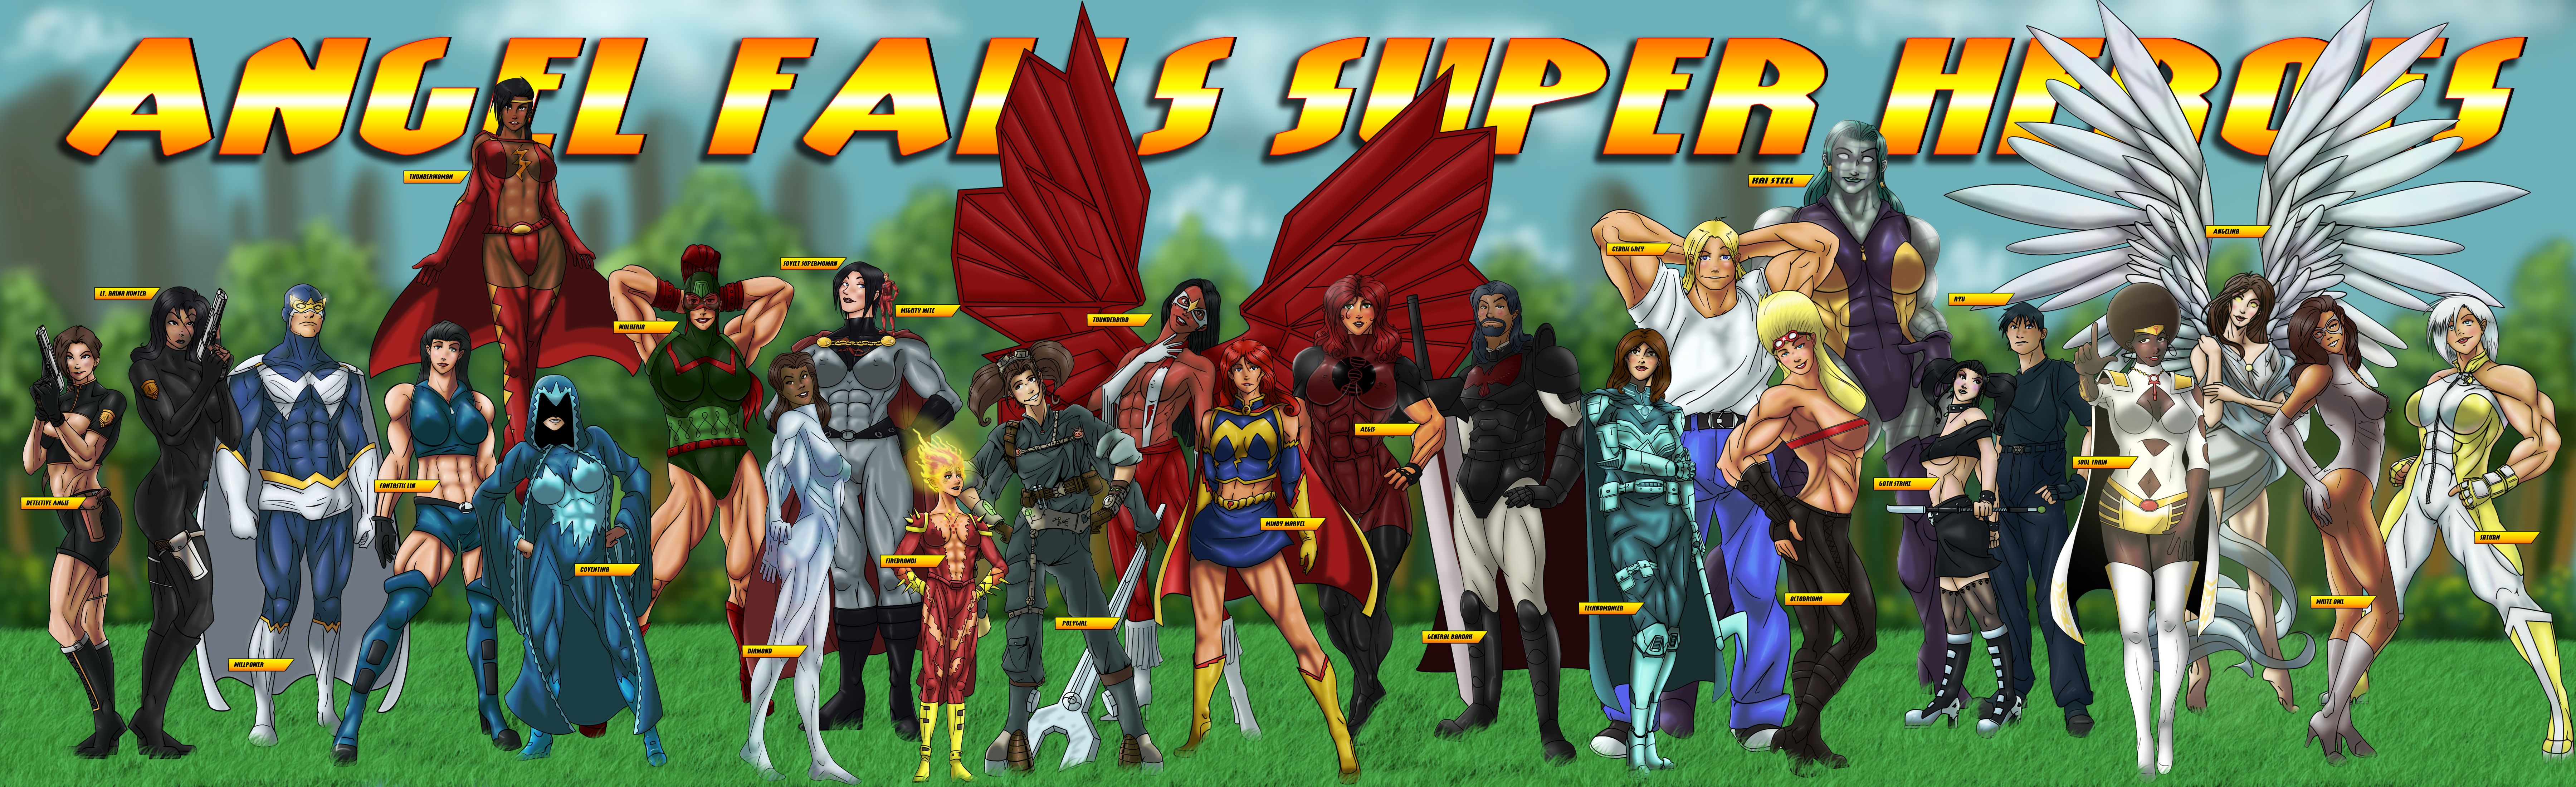 Angel Falls Superhero Roster by Sean-Loco-ODonnell